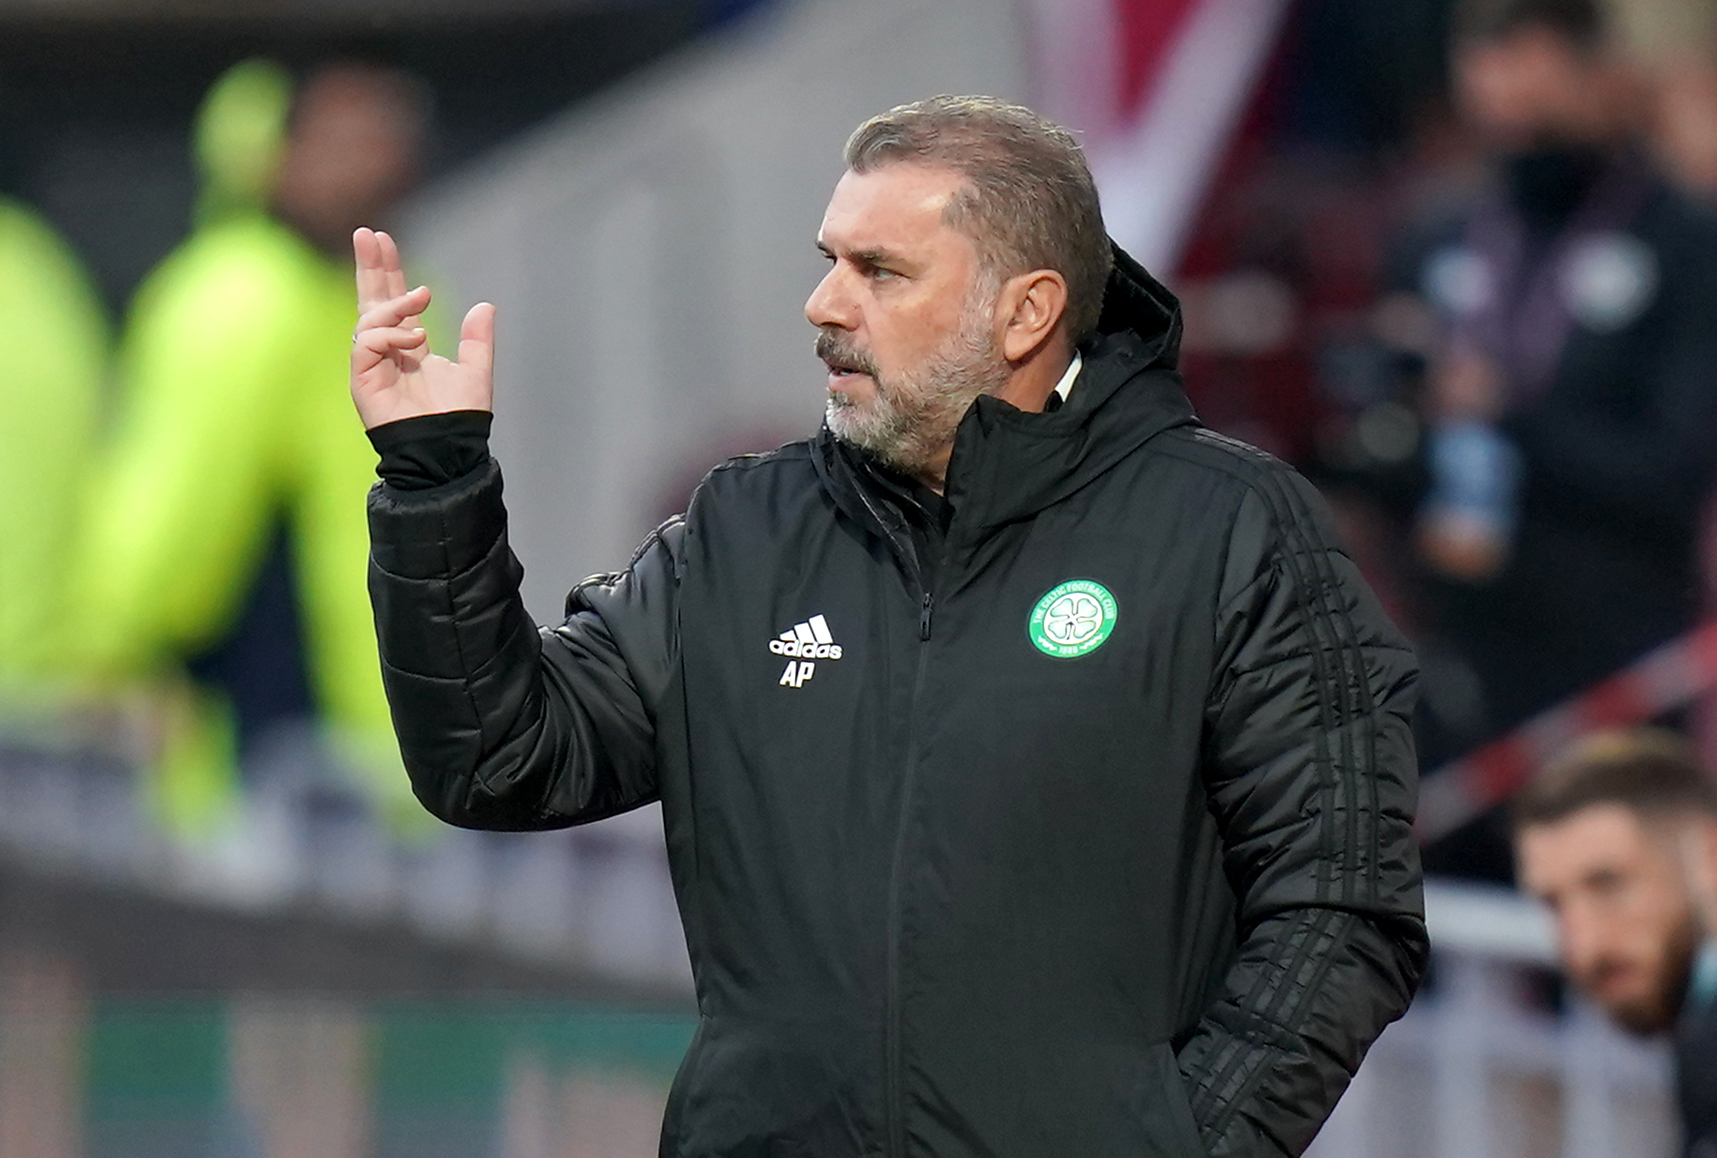 'It's not the way I want us to play': Ange Postecoglou sees room for improvement after first Celtic win